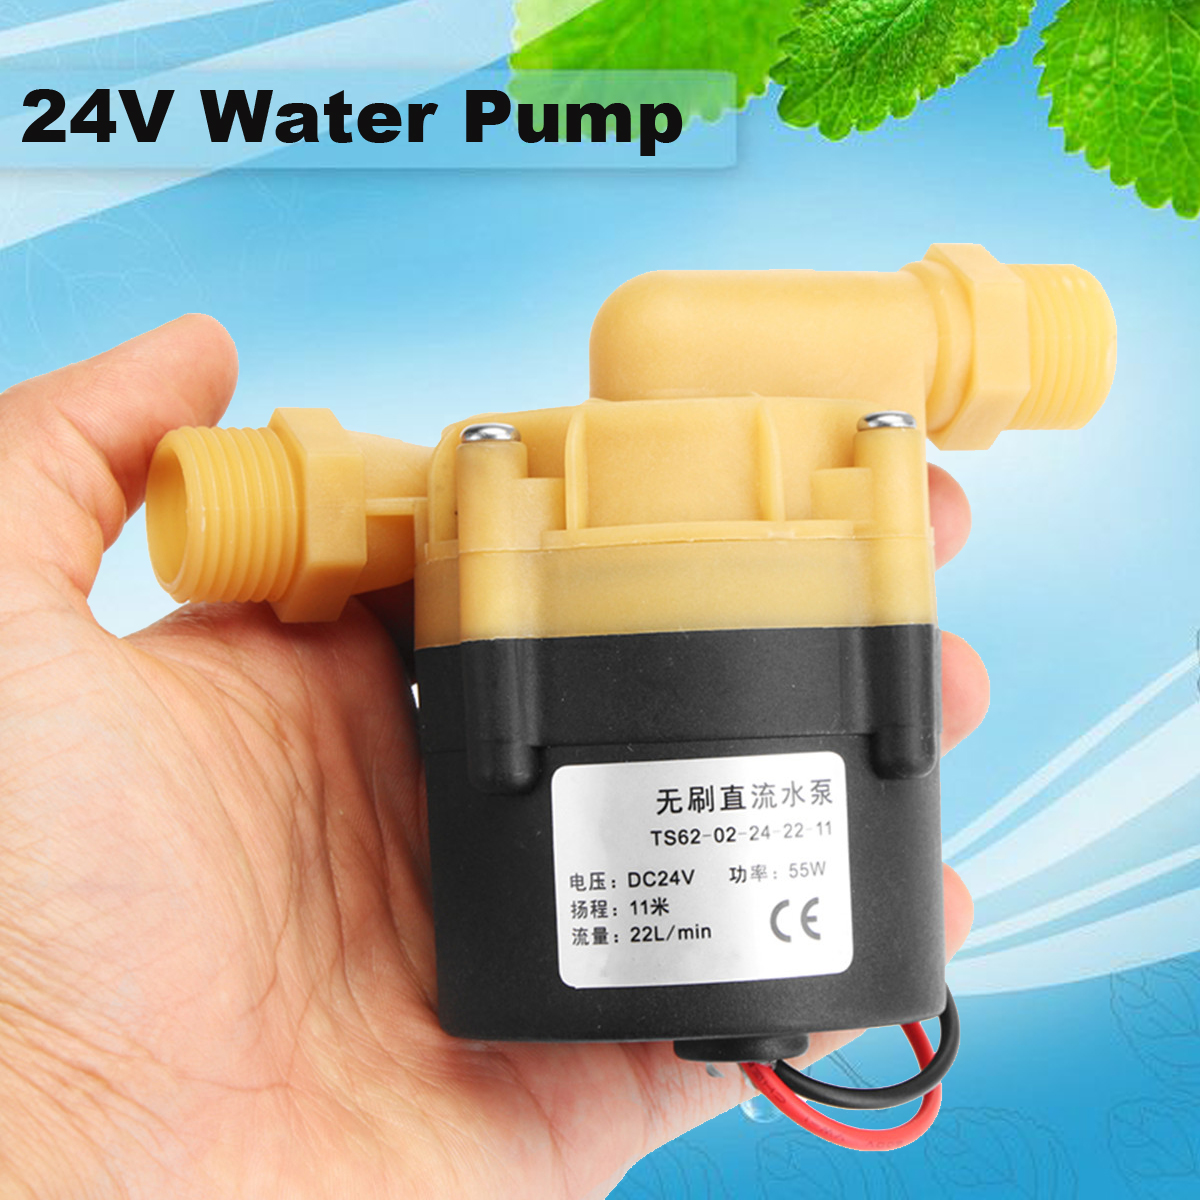 Brushless DC 24V 55W 22L/min Water Pump Mini Booster Pump 1.5A 11m For Chiller Machine And LED Light Pump chiller cw 3000 cw 5200 water pump voltage 24v dc power 30w flow rate 8 5l min head 8 meter